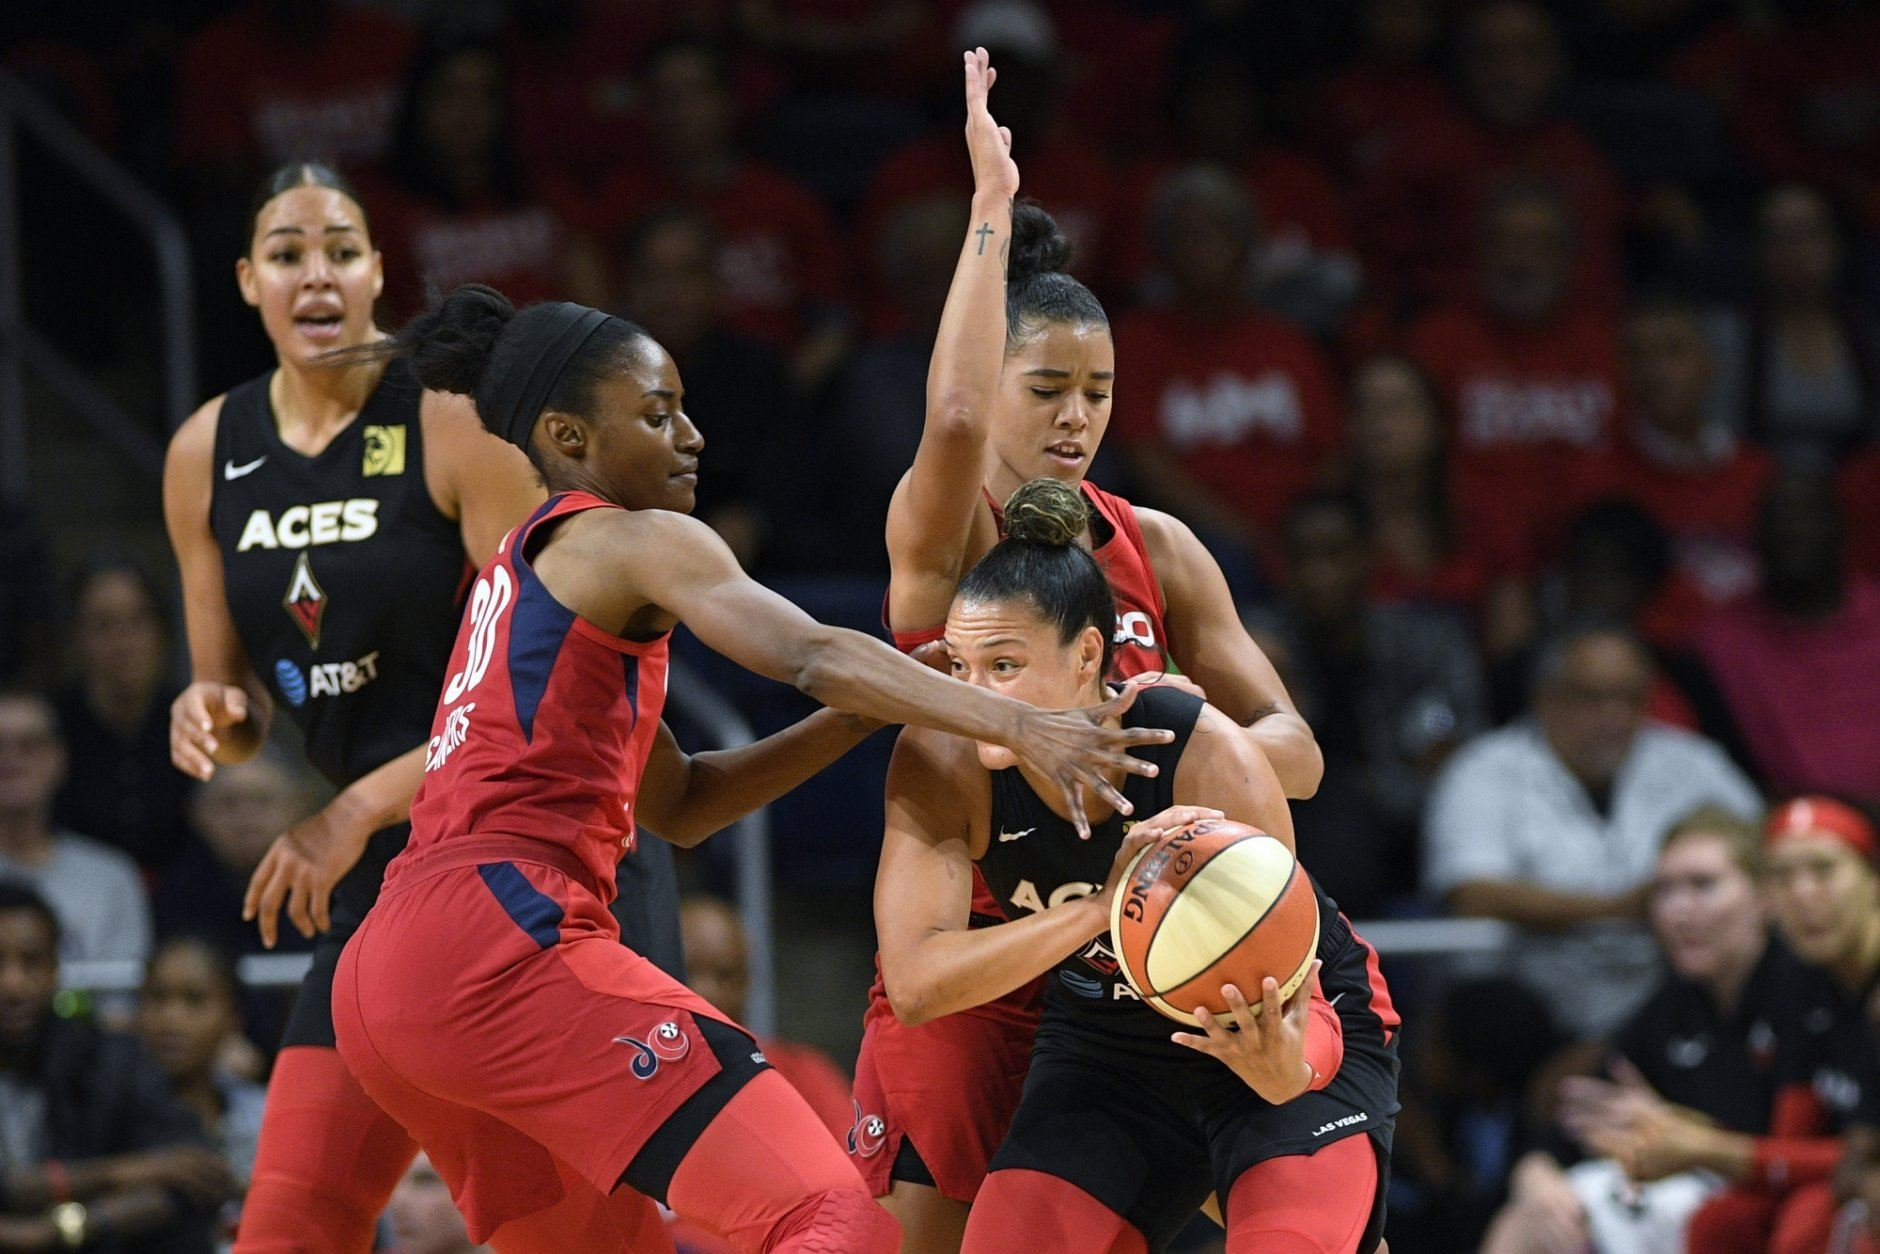 Las Vegas Aces guard Kayla McBride, right, tries to get past Washington Mystics forward LaToya Sanders, left, and guard Natasha Cloud, back right, during the first half of Game 2 of a WNBA playoff basketball series Thursday, Sept. 19, 2019, in Washington. (AP Photo/Nick Wass)